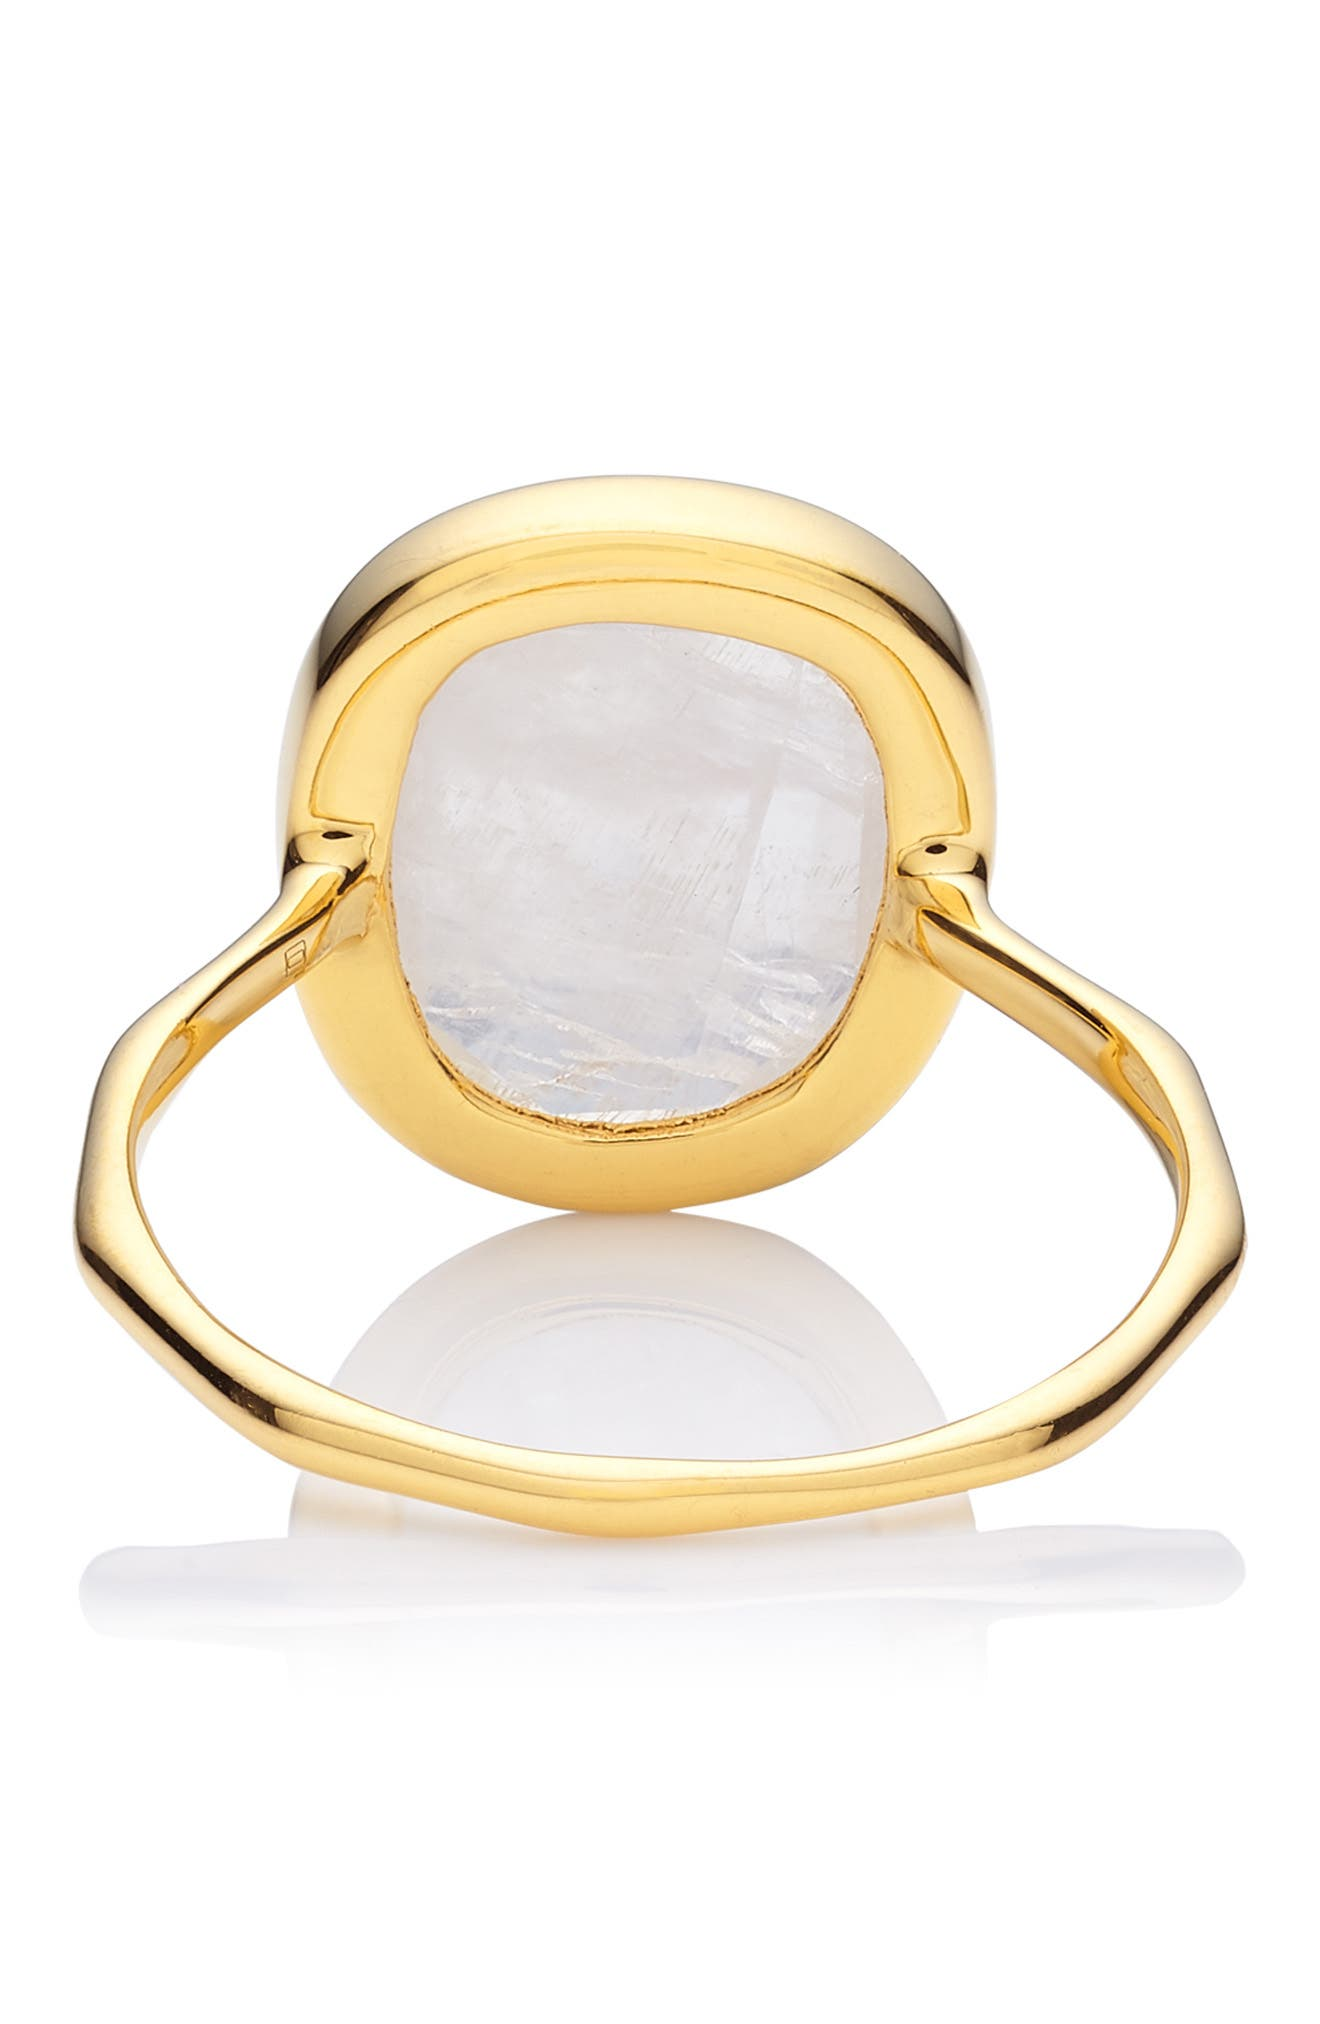 Siren Semiprecious Stone Ring,                             Alternate thumbnail 3, color,                             GOLD/ MOONSTONE